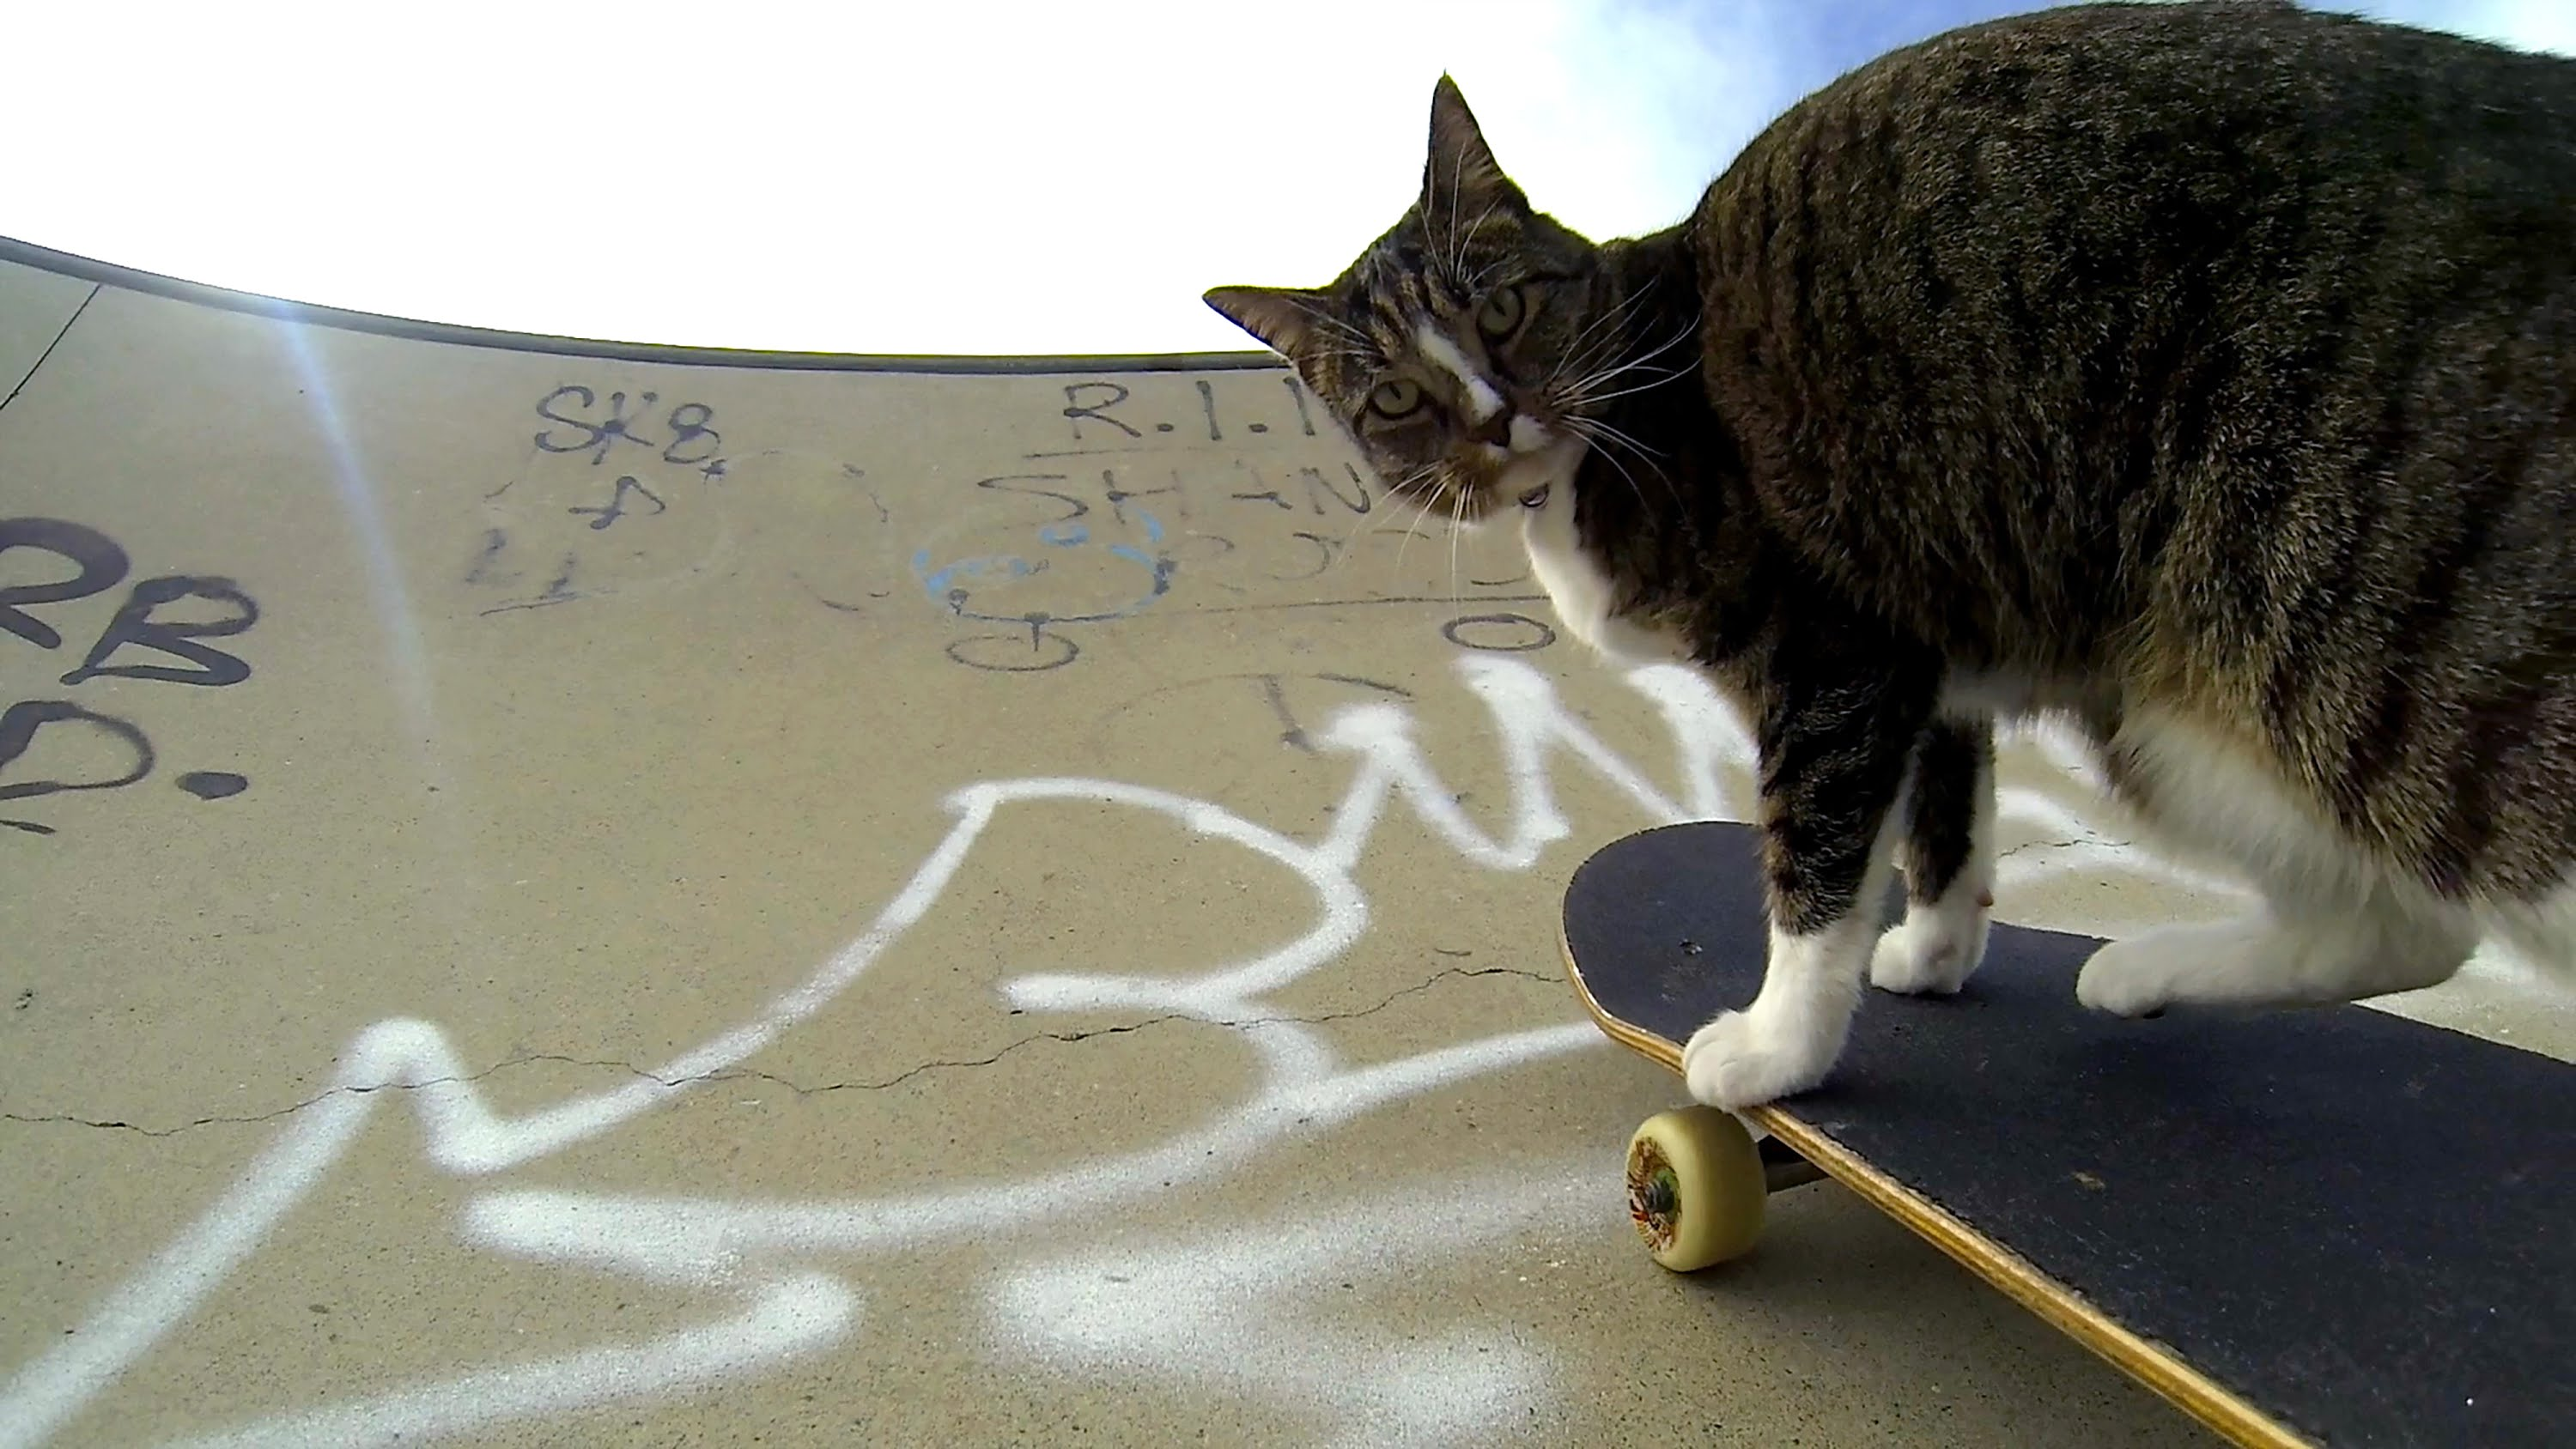 Didga, the skater cat!